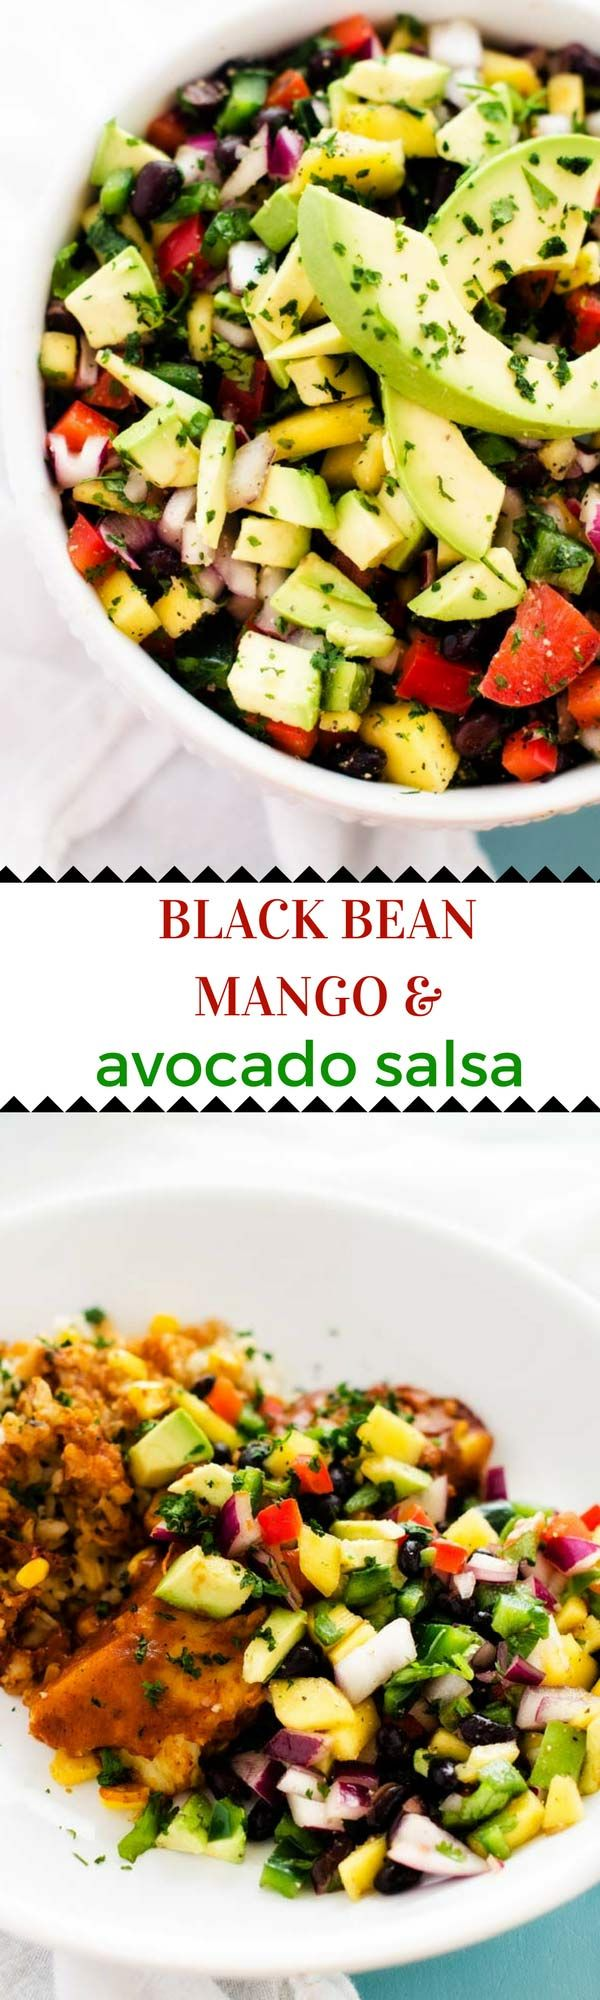 Black Bean, Mango & Avocado Salsa - This Black Bean, Mango & Avocado Salsa is the perfect addition to your Mexican night!  Easy to make ahead and so delicious, it makes any meal special.  (Gluten Free, Dairy Free, Vegan) It pairs beautifully with LEAN CUISINE® MARKETPLACE Cheese & Fire-Roasted Chile Tamale for a quick and easy meal!  #ad #FeedYourFoodie